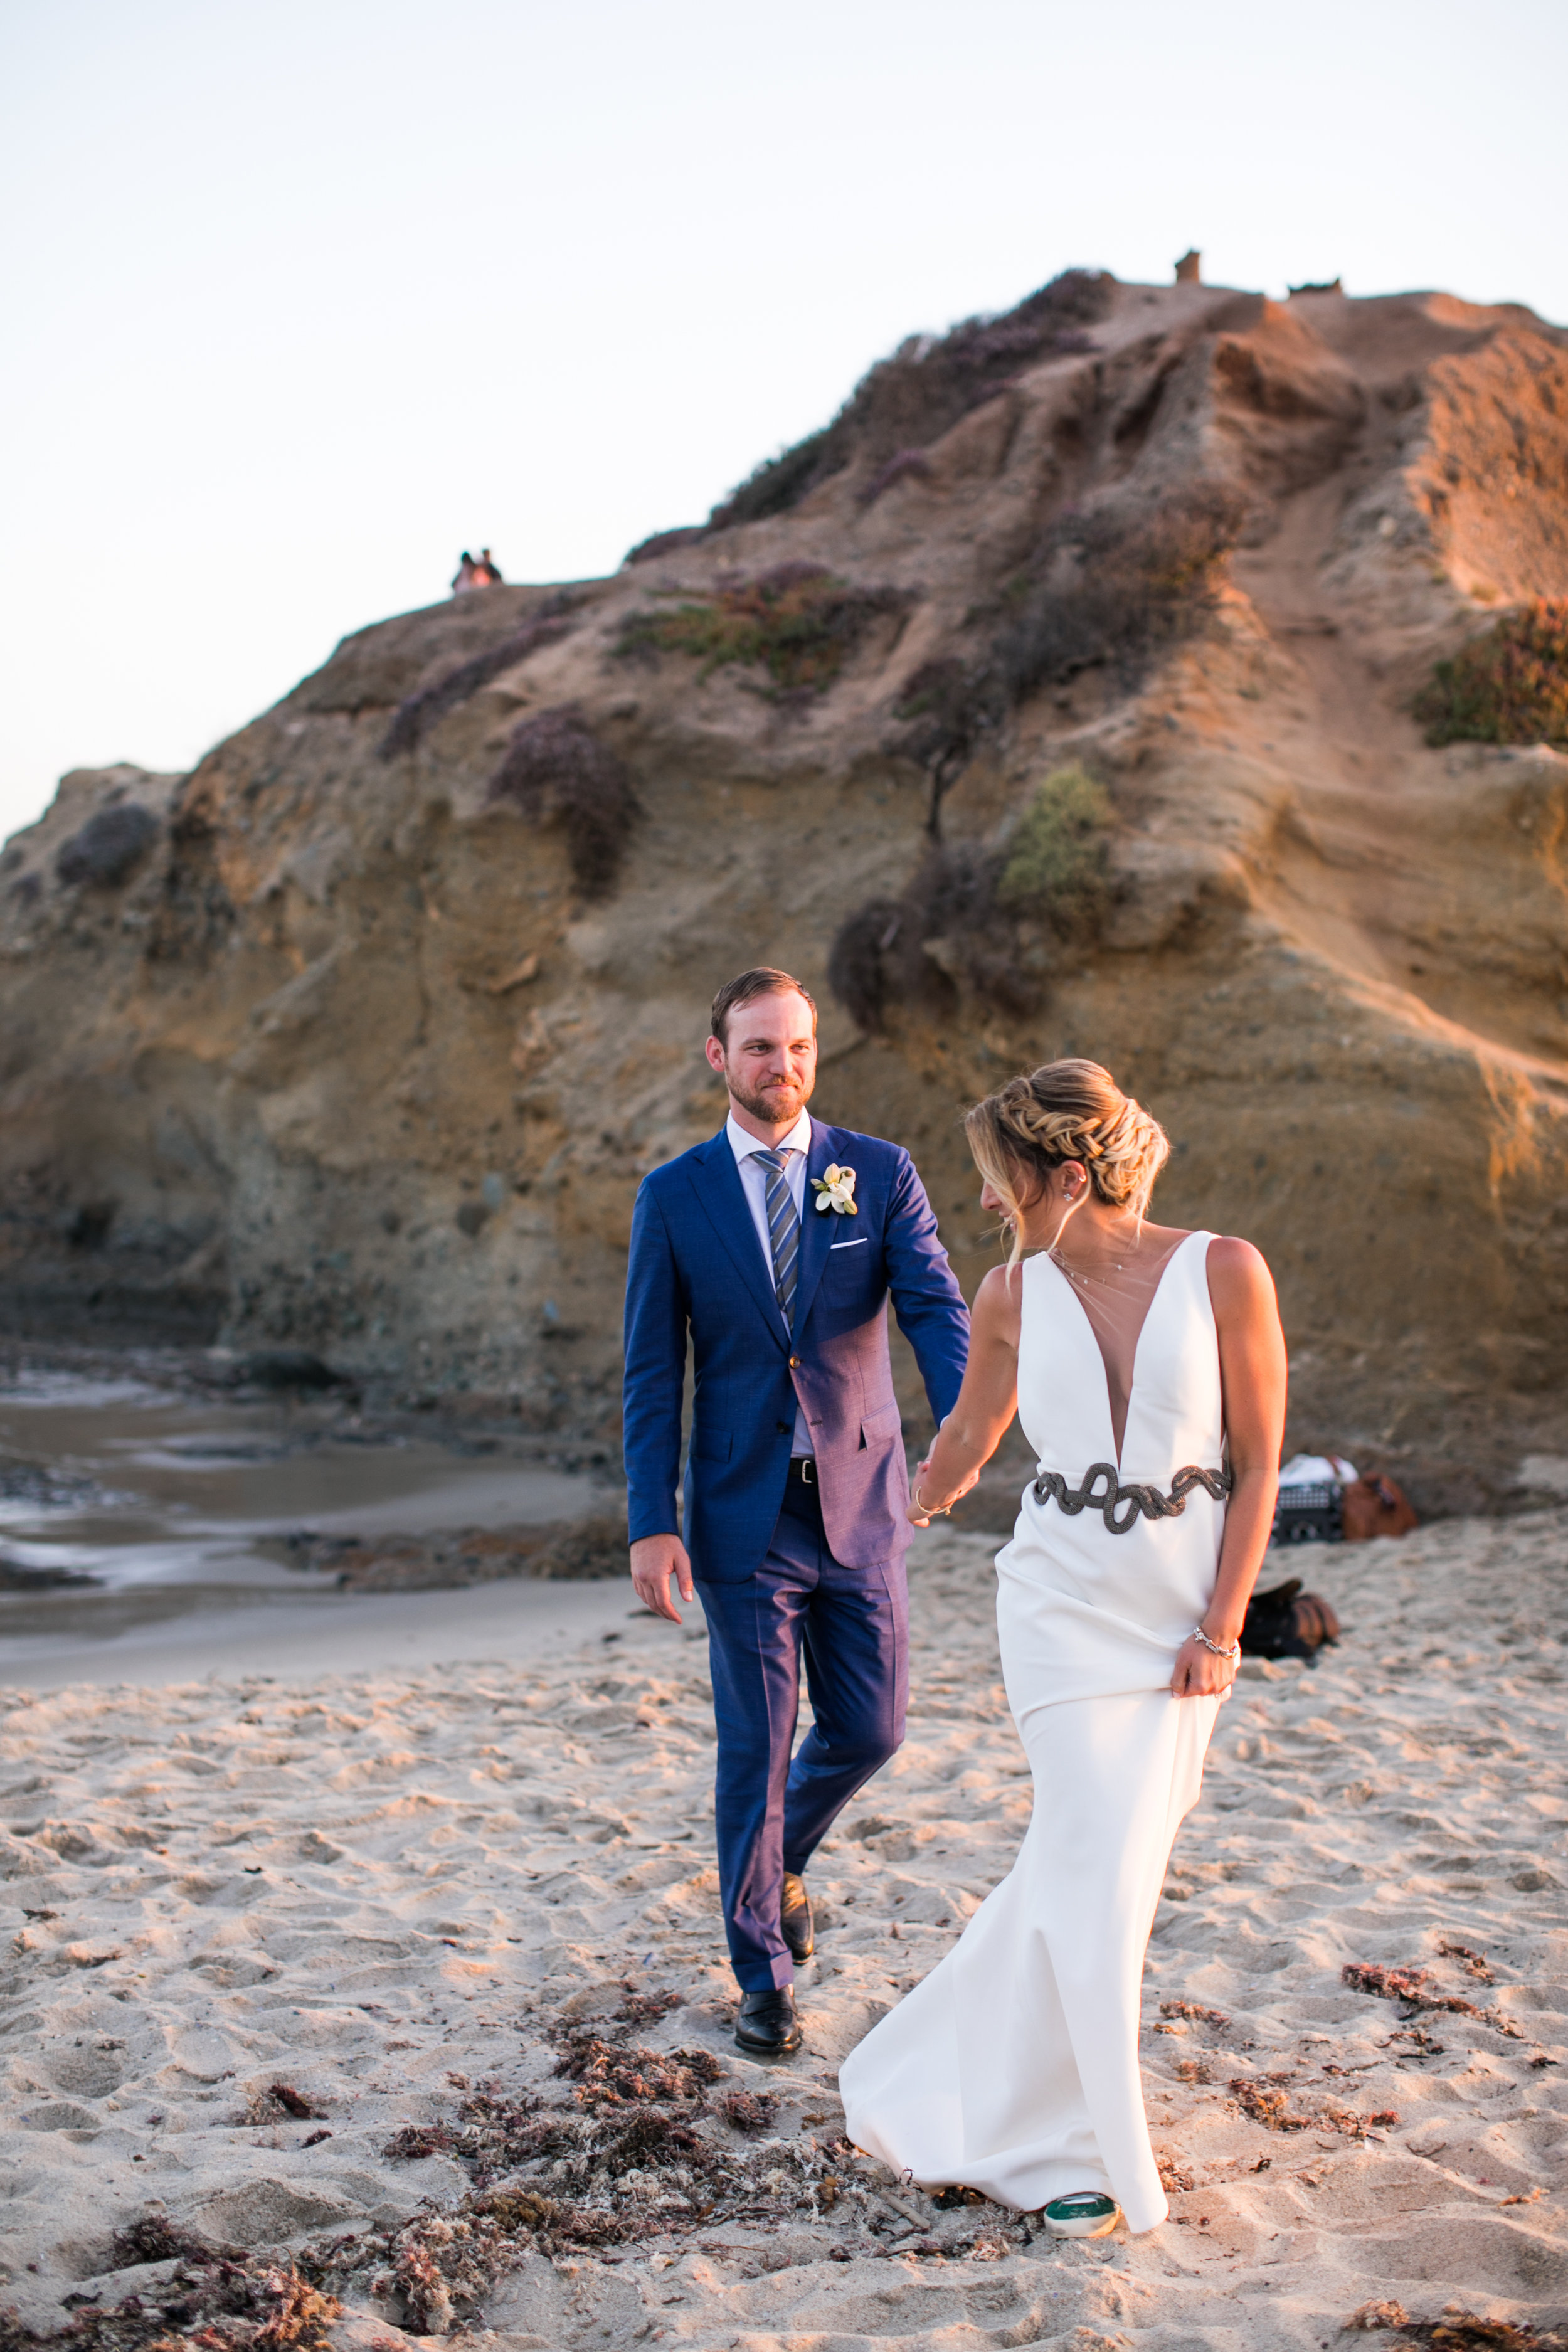 Wedding Couple Details - Laguna Beach, California - Summer Wedding - Julian Leaver Events